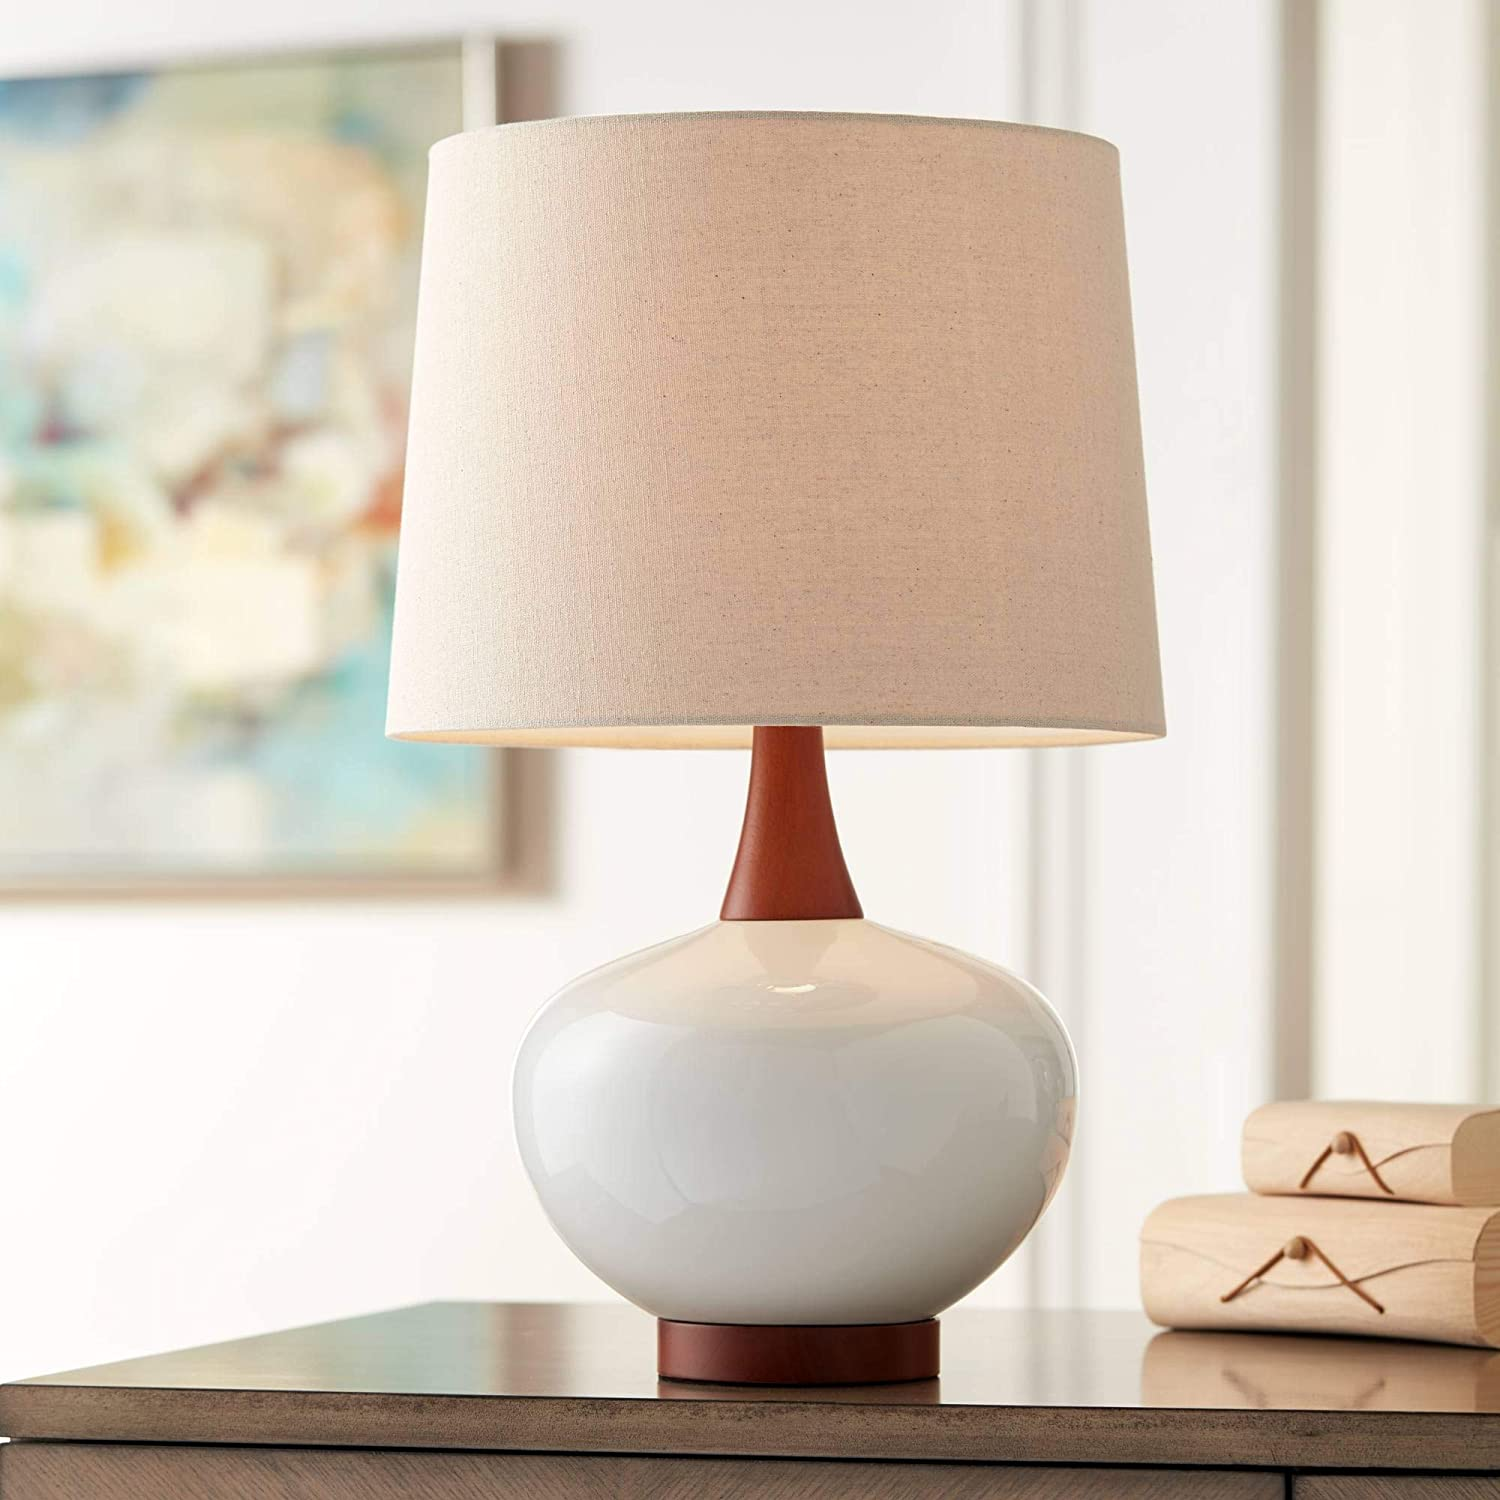 Brice Mid Century Modern Contemporary Style Table Lamp Ceramic Ivory Off White Tapered Drum Shade Decor For Living Room Bedroom House Bedside Nightstand Home Office Family 360 Lighting